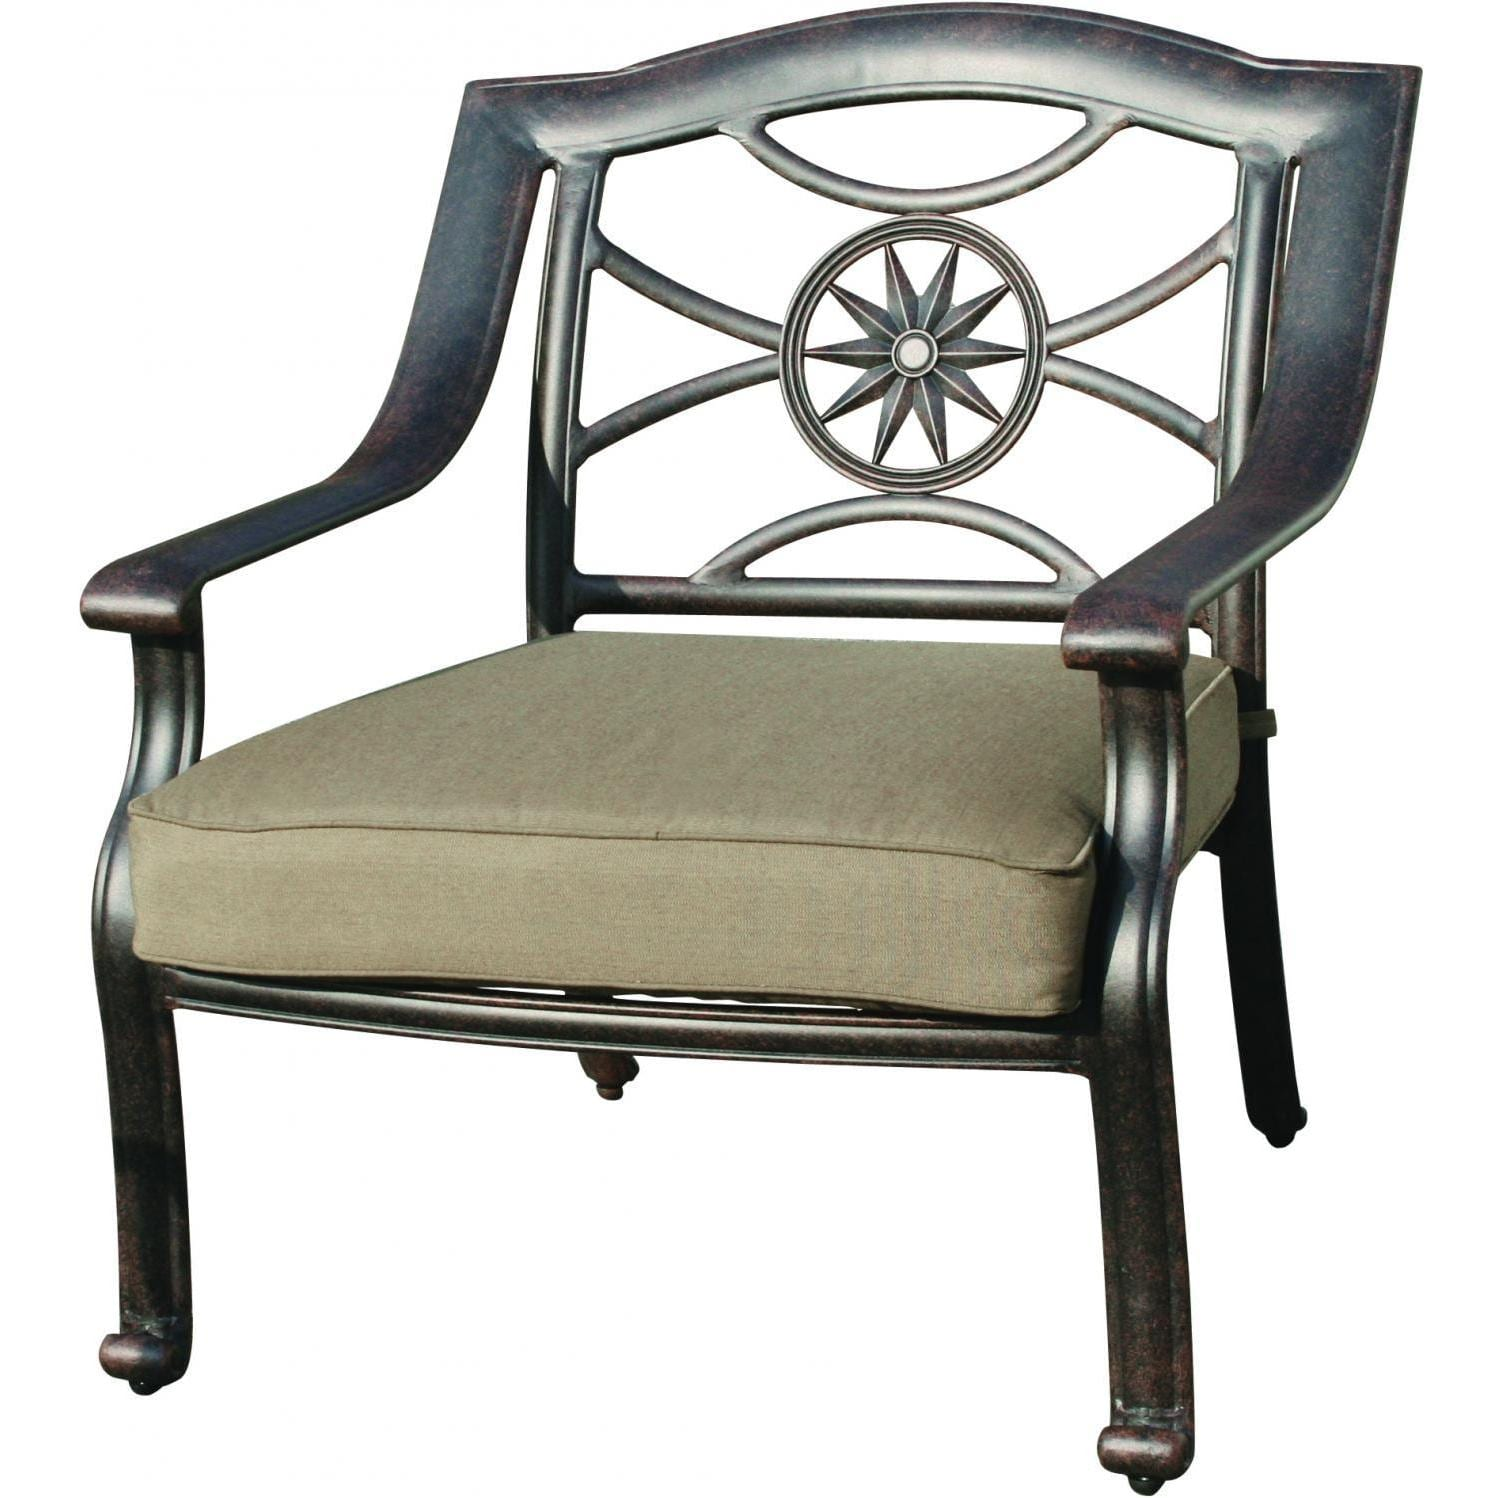 Deep Seating Patio Chairs Darlee Ten Star Deep Seating Patio Club Chair Cast Aluminum